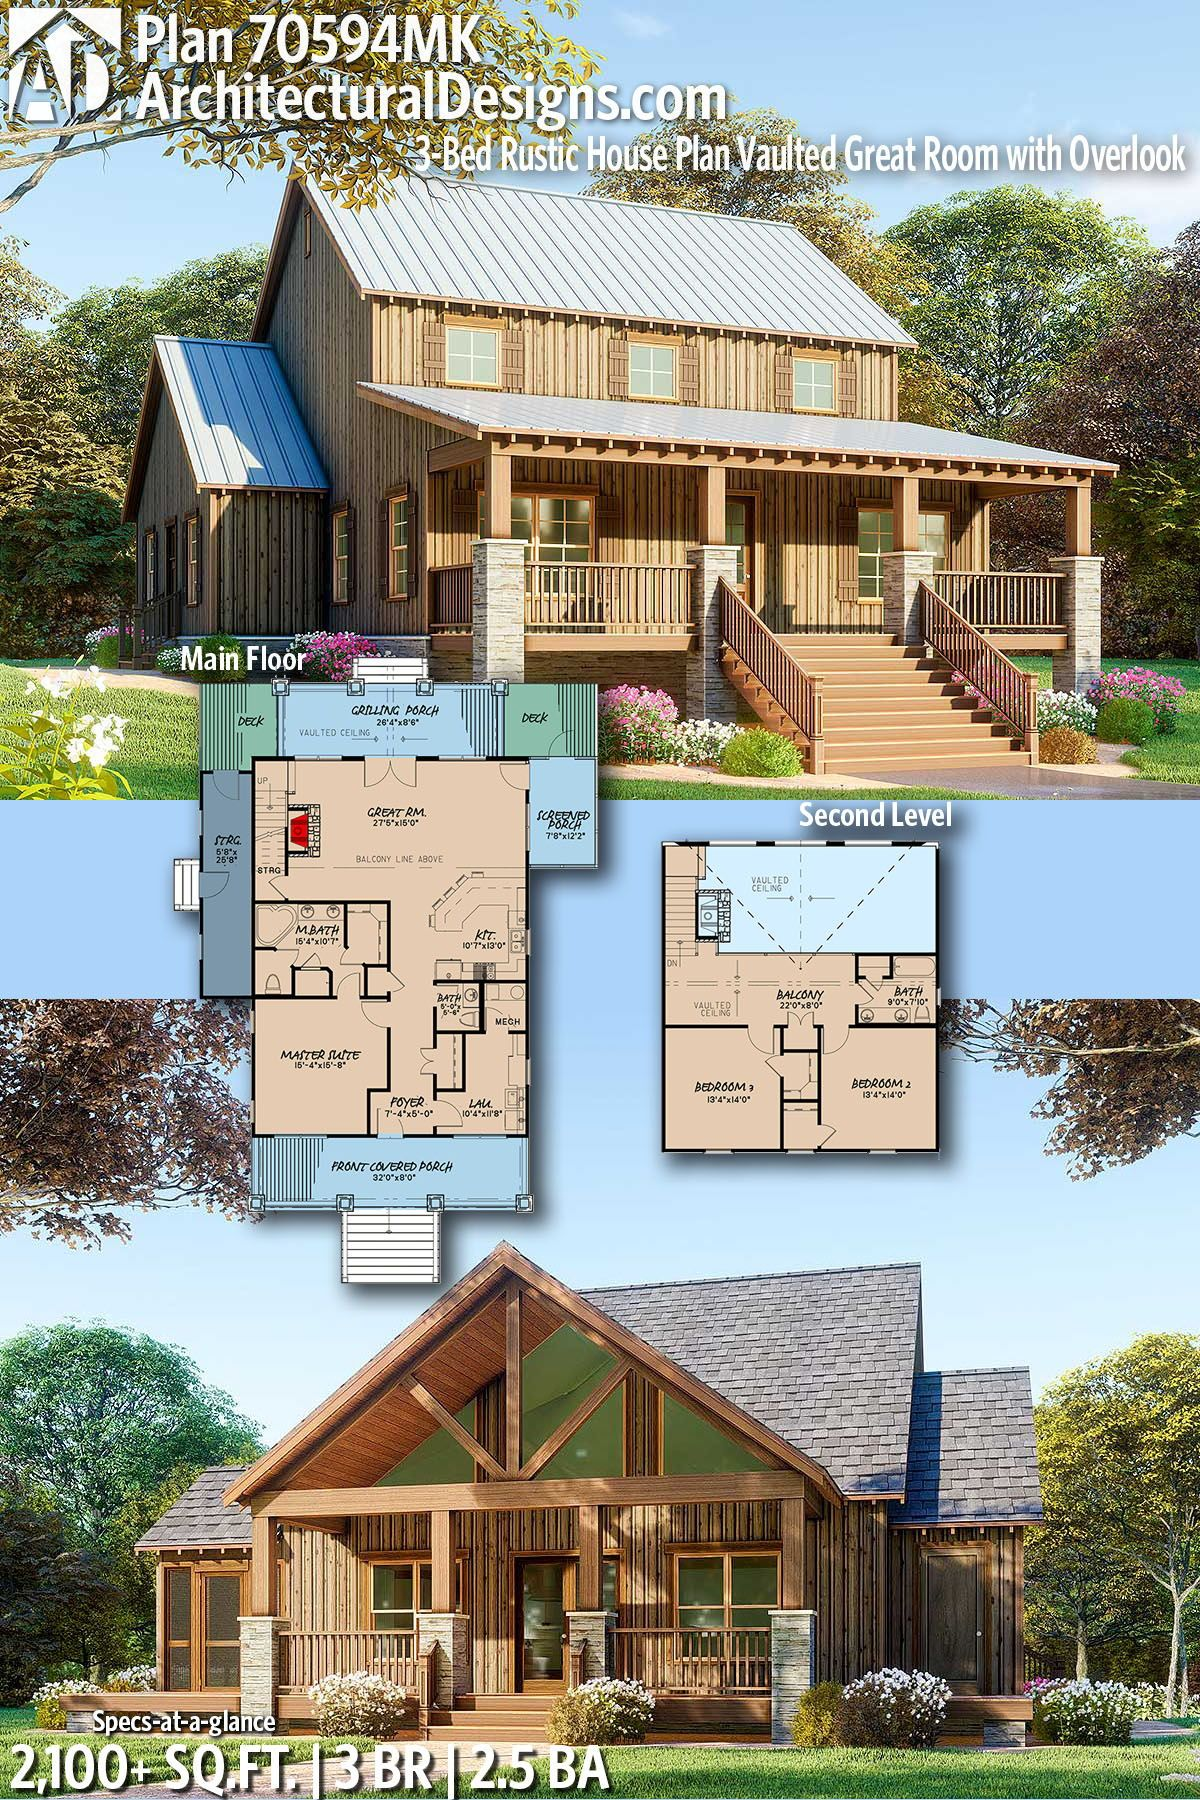 Plan 70594mk 3-bed Rustic House Vaulted Great Room